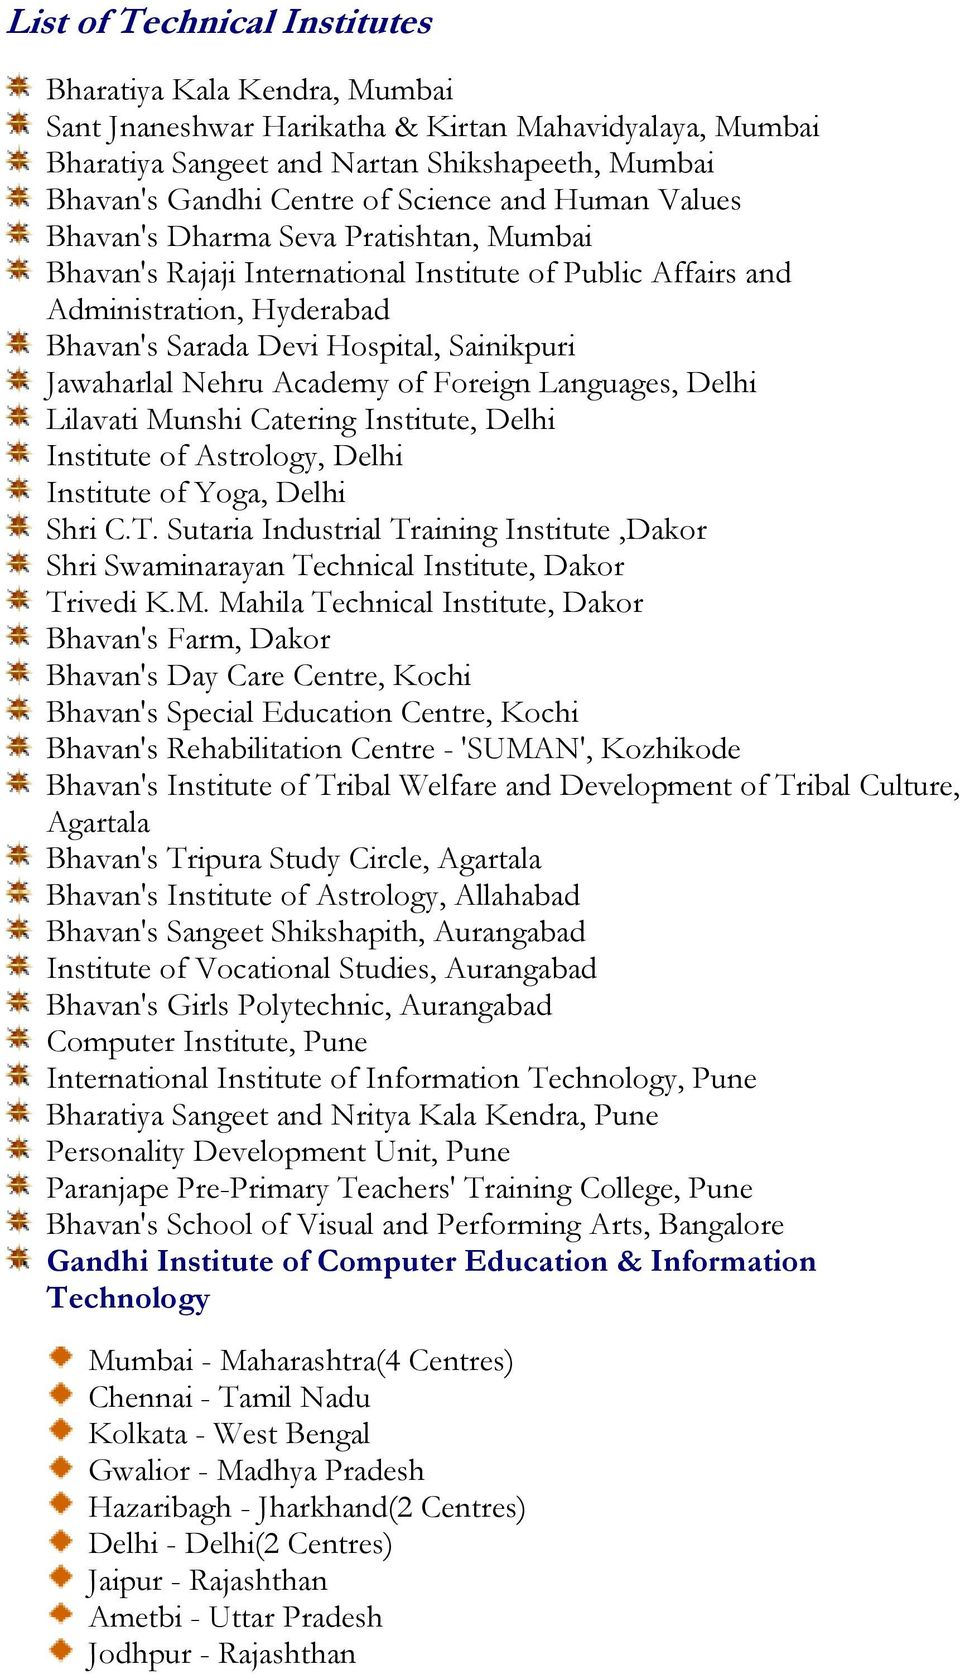 Languages, Delhi Lilavati Munshi Catering Institute, Delhi Institute of Astrology, Delhi Institute of Yoga, Delhi Shri C.T.